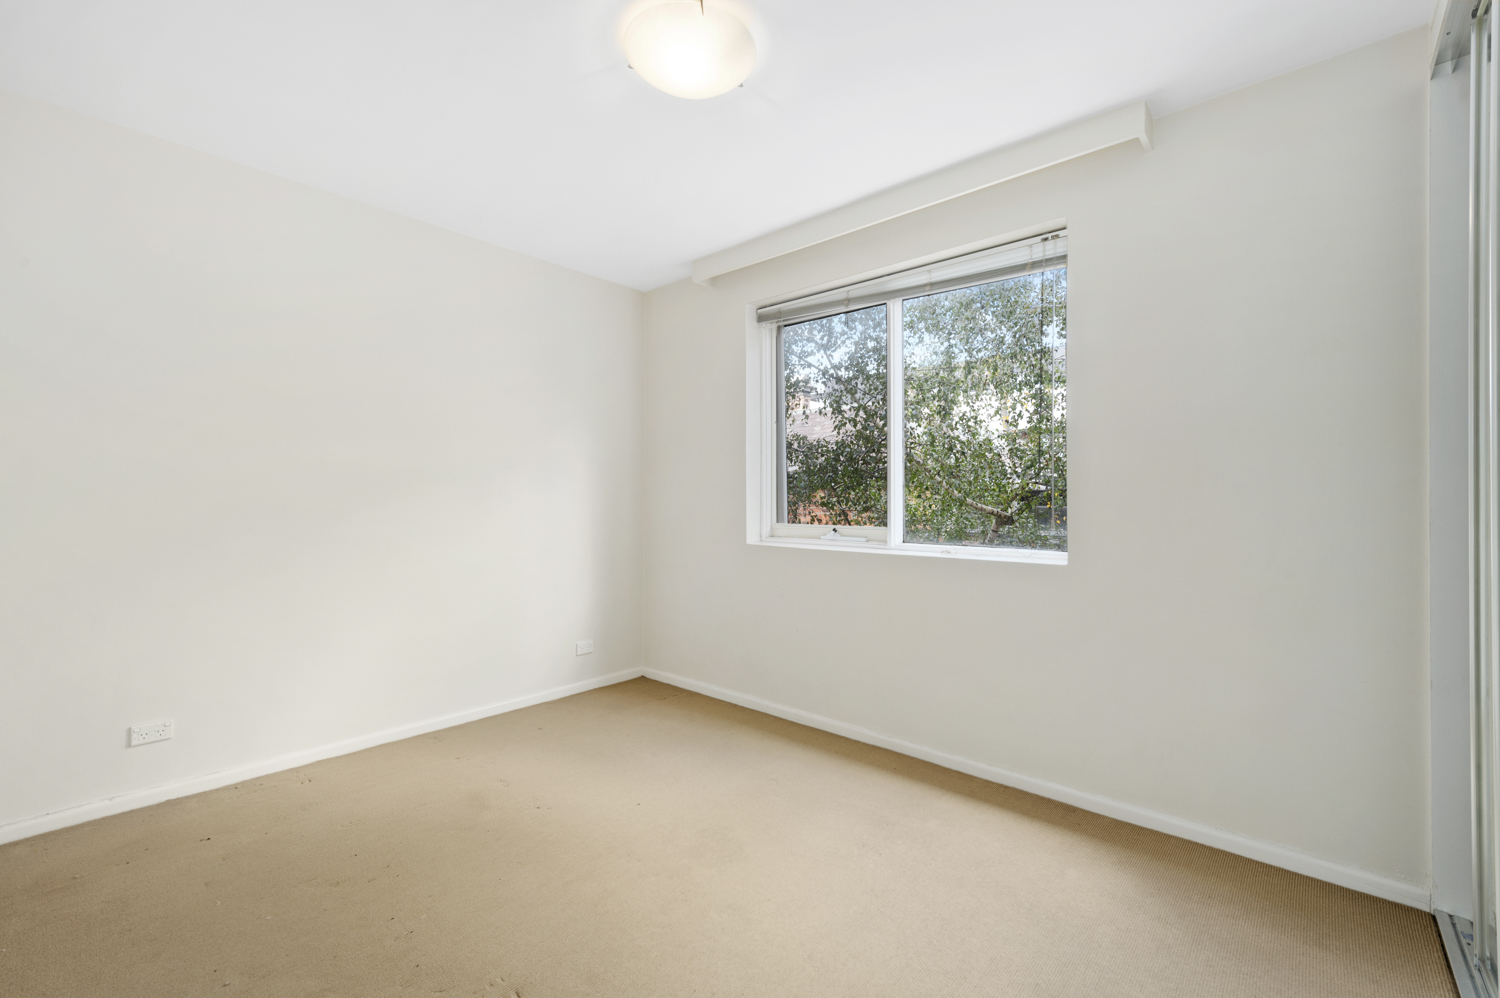 12-11-kooyong-road-armadale-student-accommodation-Melbourne-Bedroom-Unilodgers